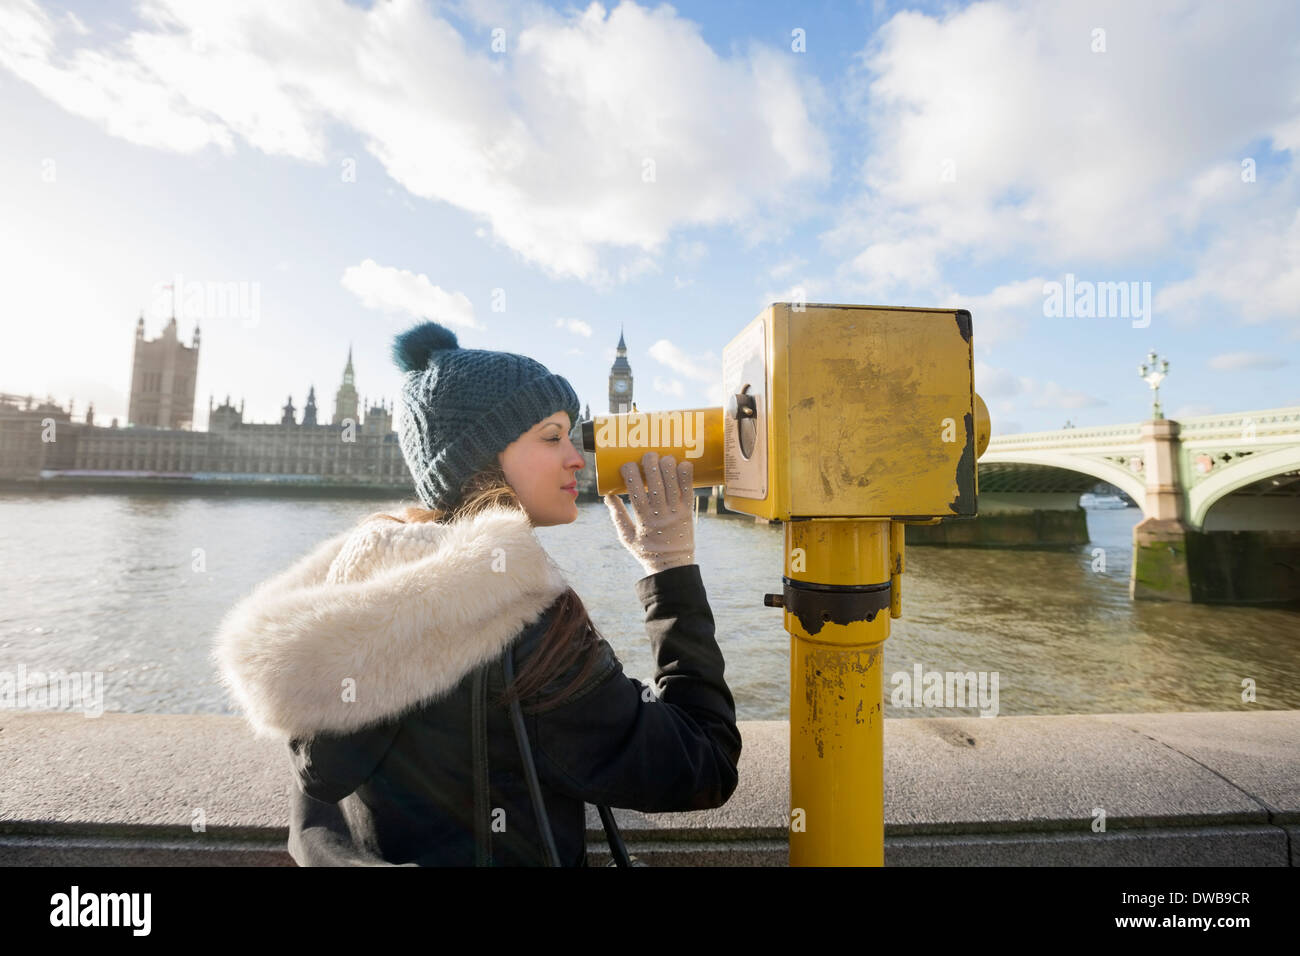 Side view of young woman looking through telescope by river Thames, London, UK - Stock Image